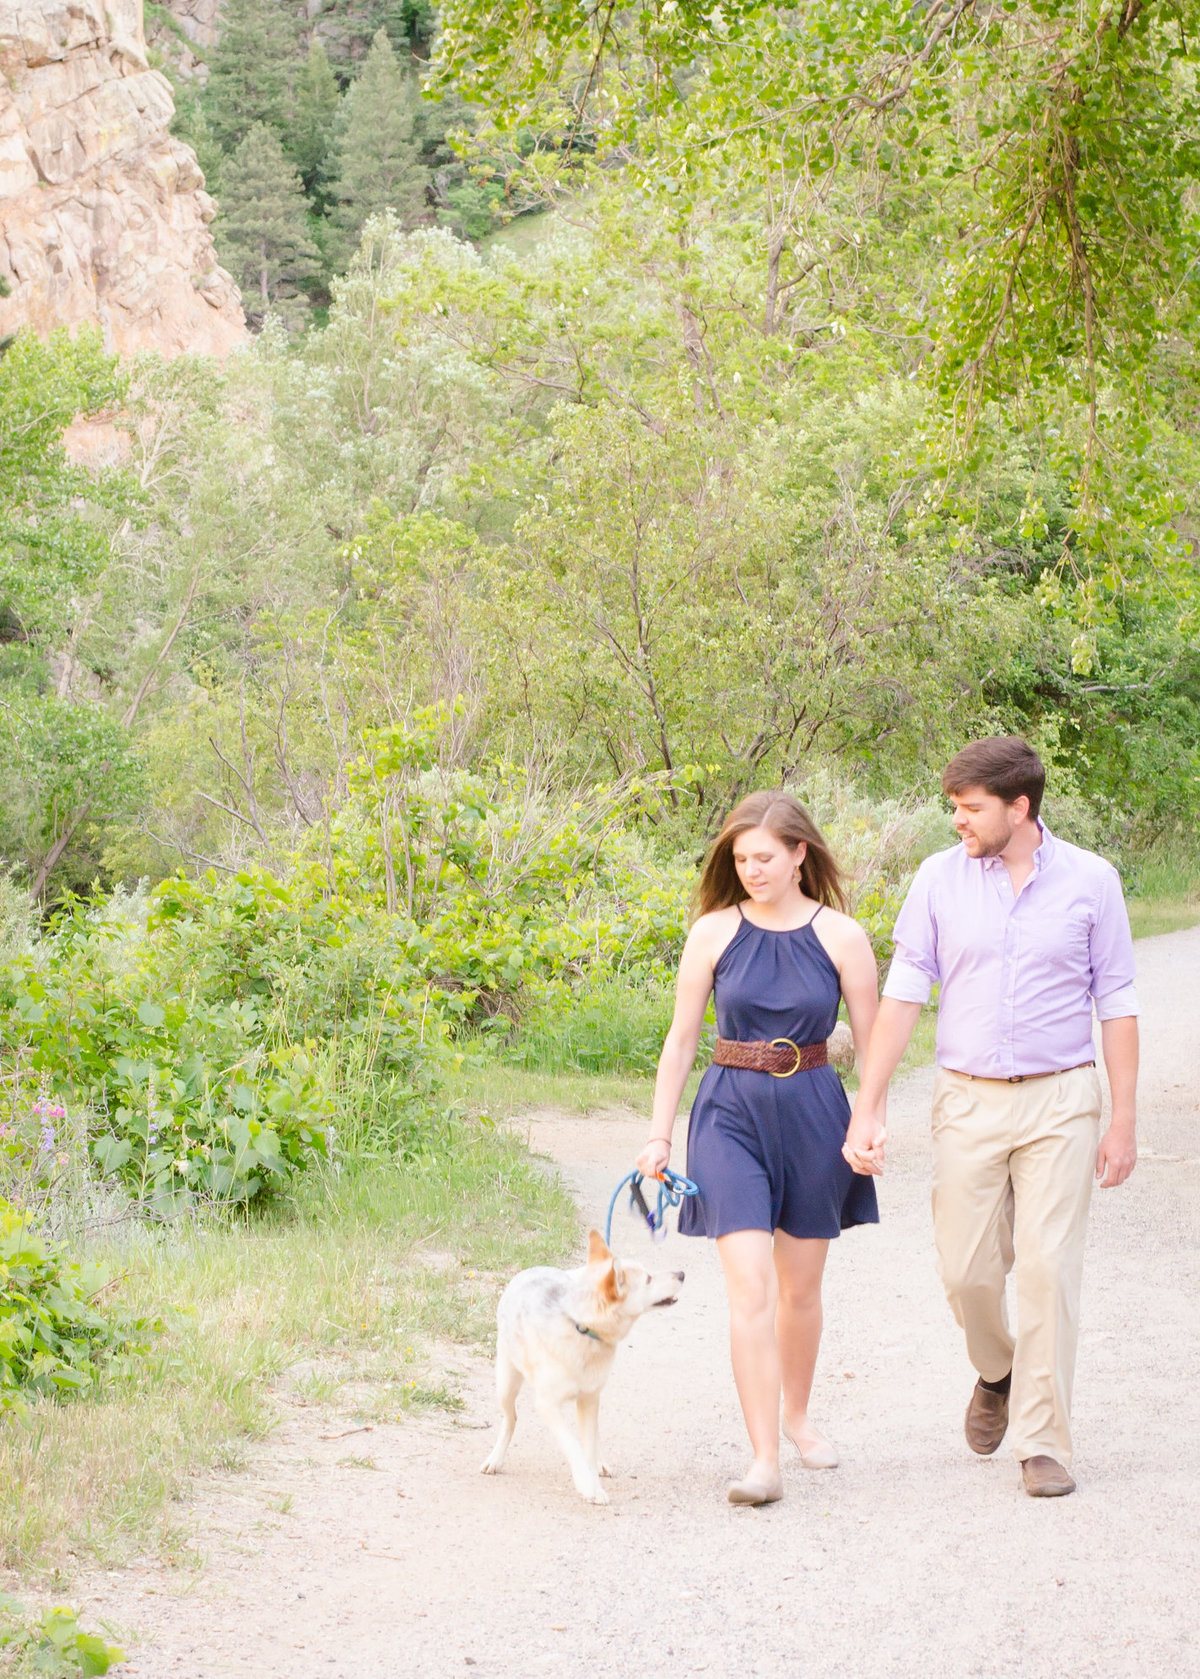 2017-06-12 Mandy+David+Engagment+Boulder+CO (4 of 55)